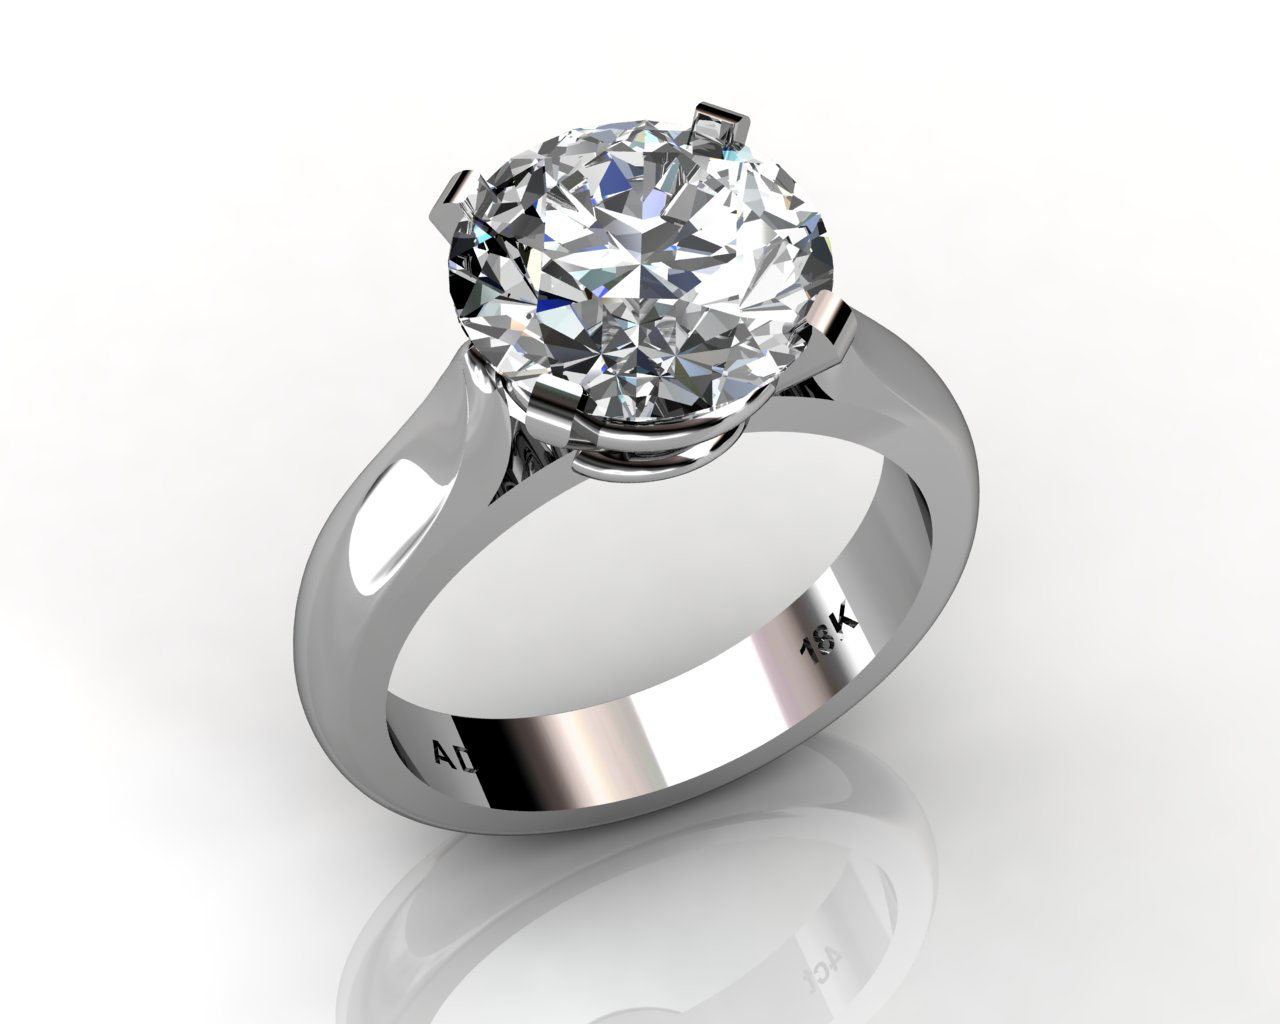 round cut diamond solitaire engagement wedding ring south bay gold -